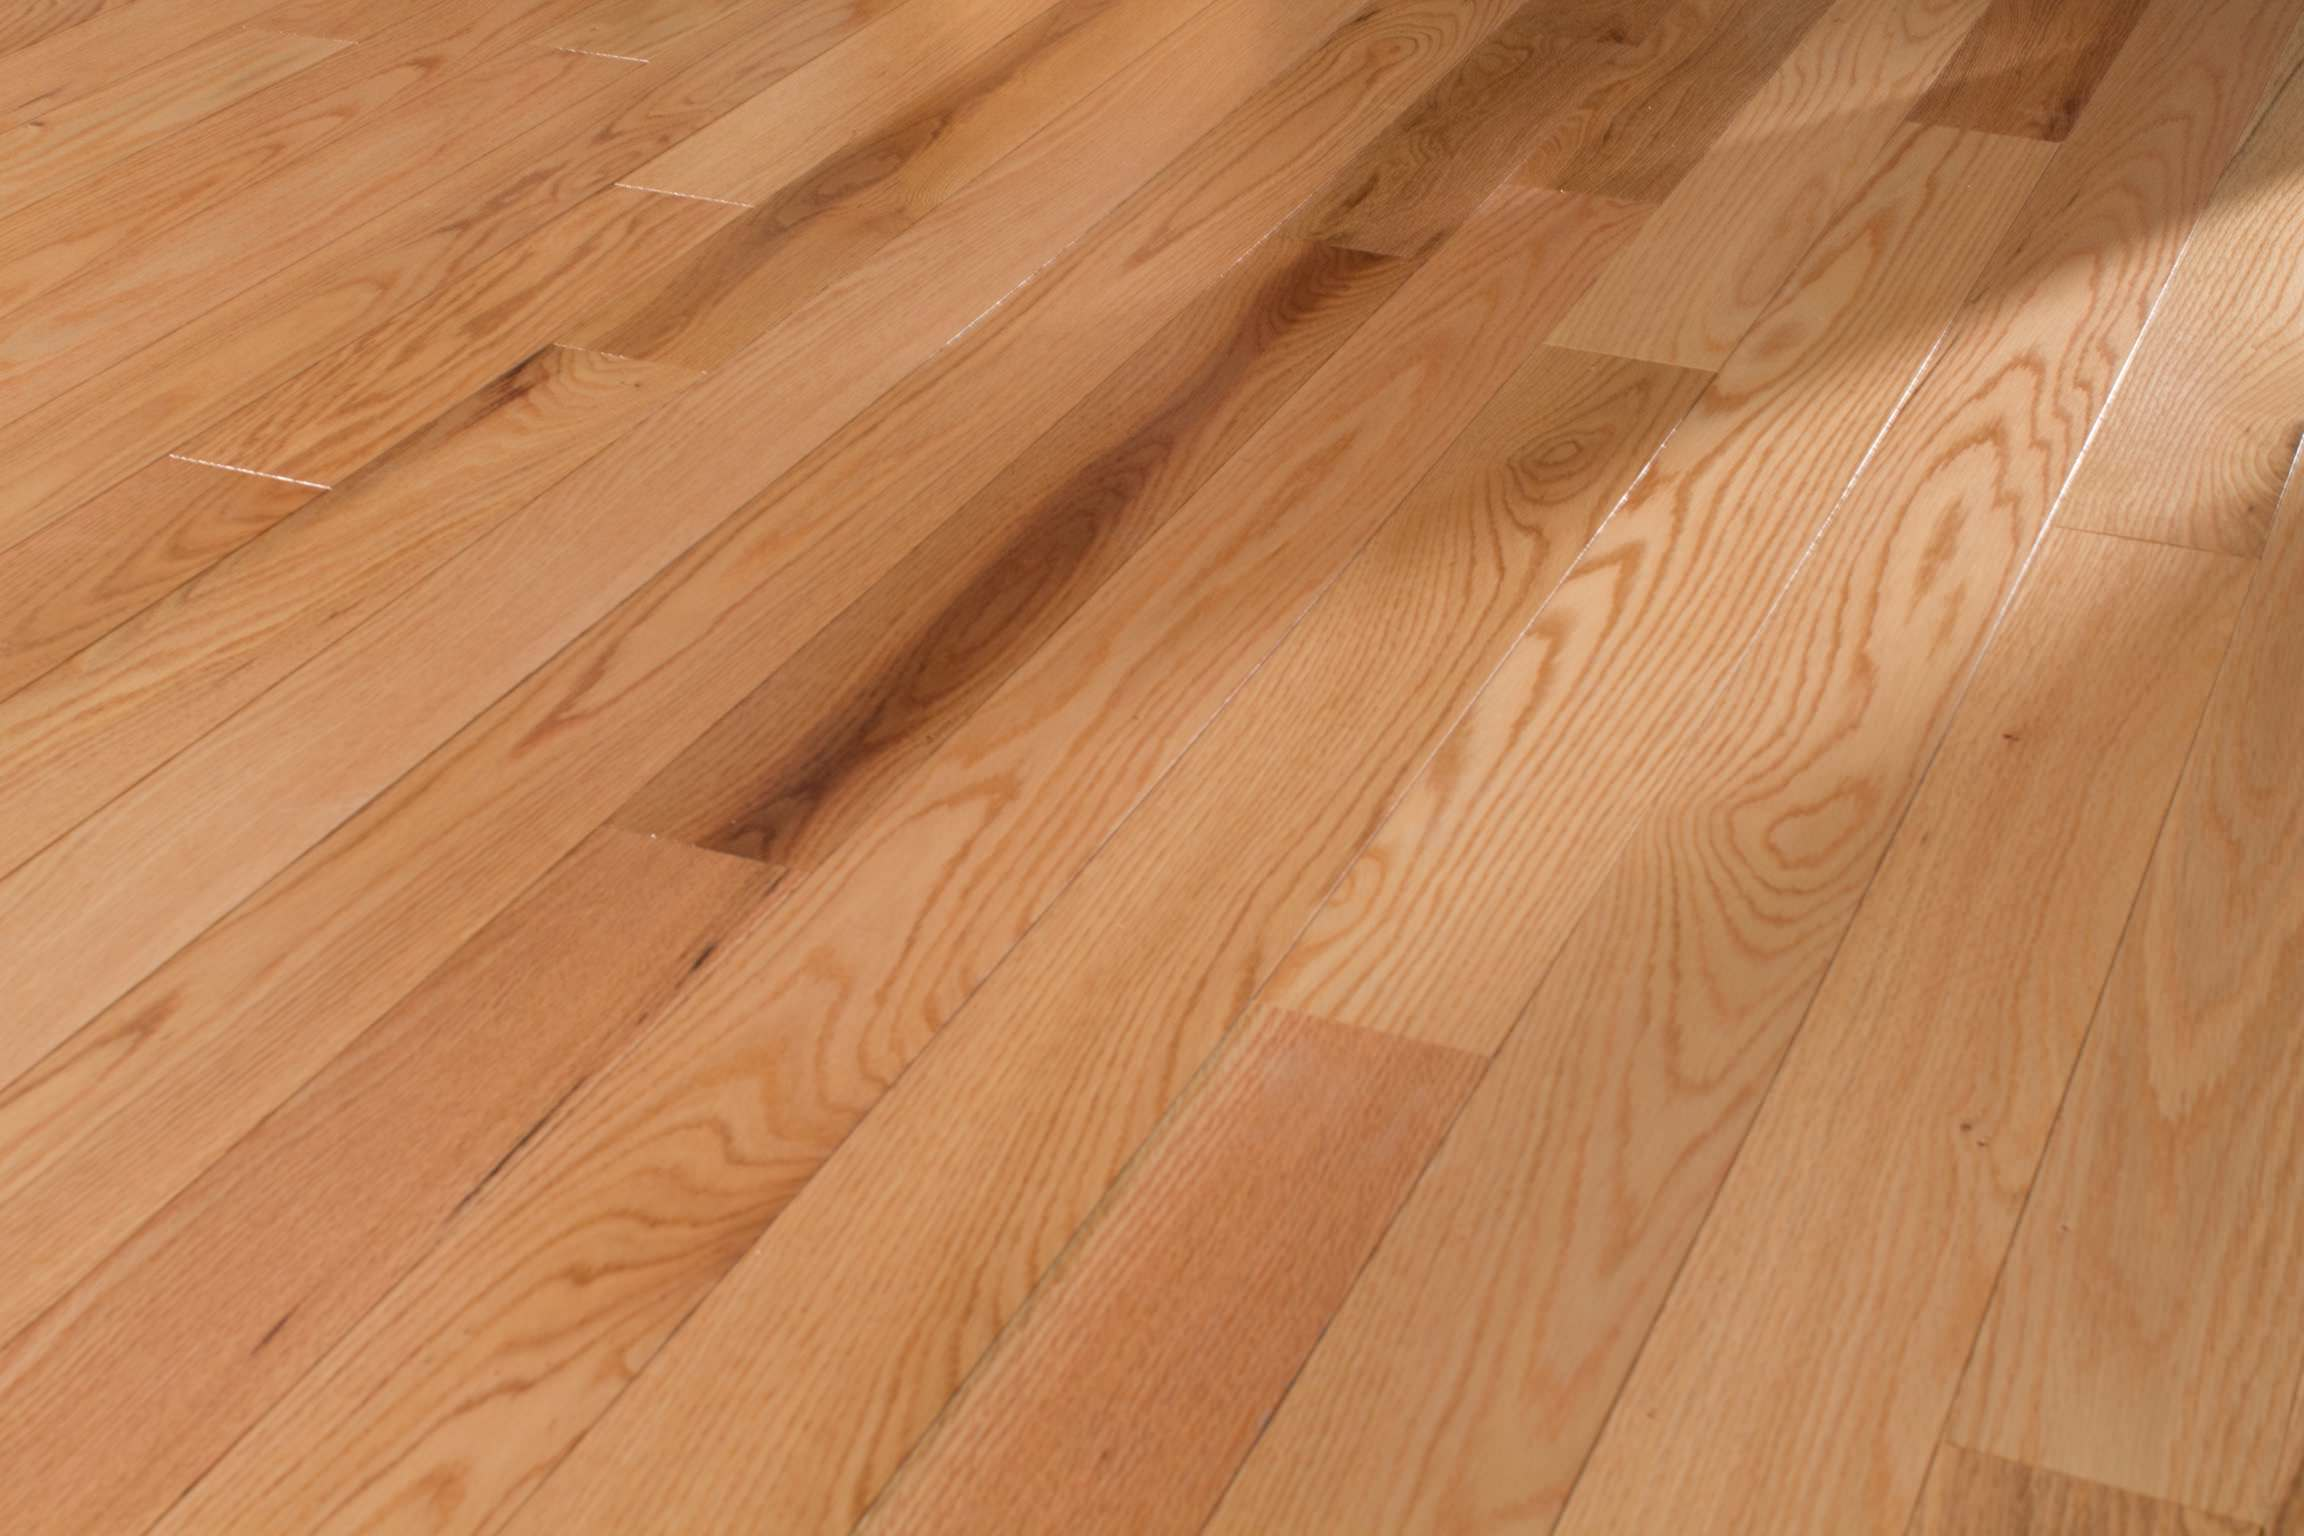 Natural Red Oak Is Showcased In Our Pennsylvania Ave Floor When It Comes To Hardwood Flooring The American Standard S A Durable Reliable